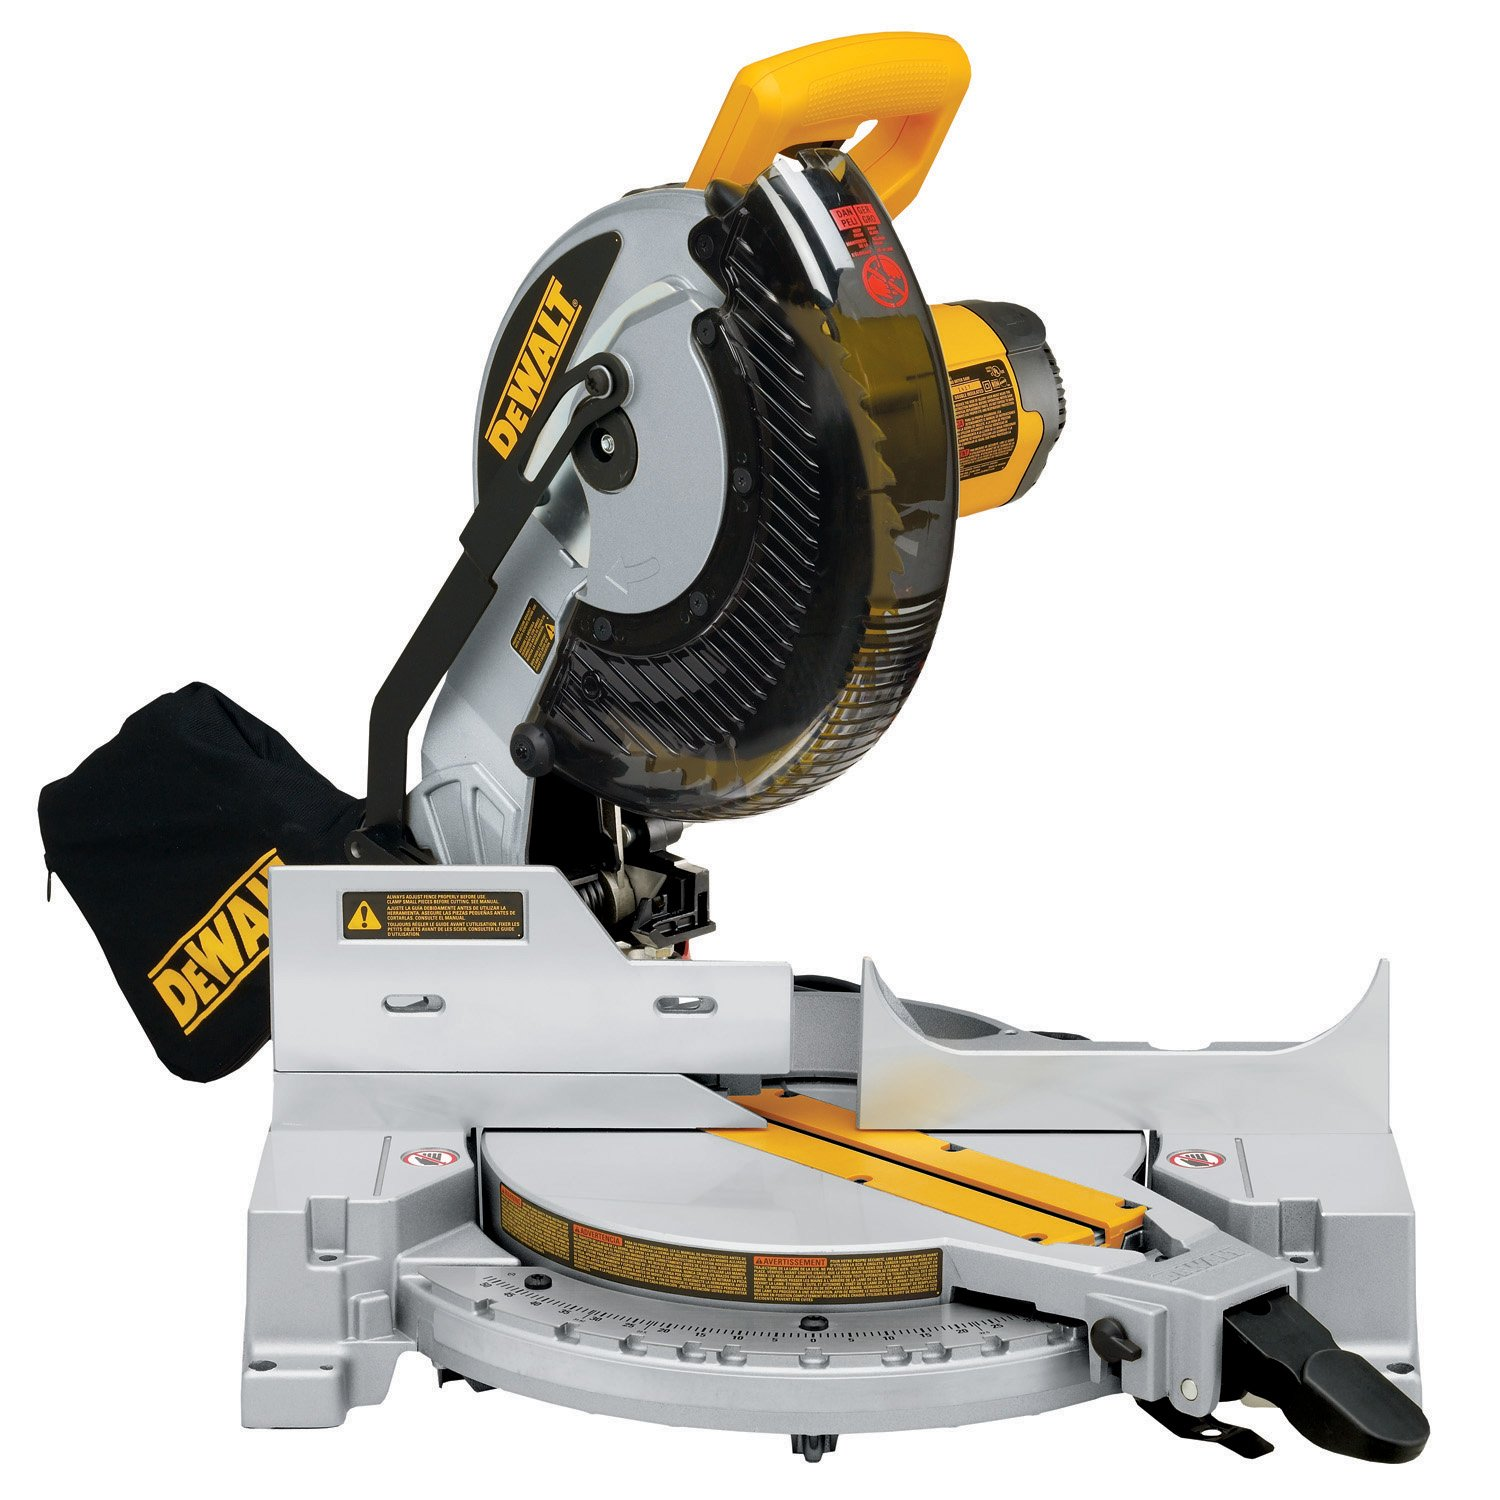 dewalt dw713 10 inch compound miter saw review remodeling know how. Black Bedroom Furniture Sets. Home Design Ideas